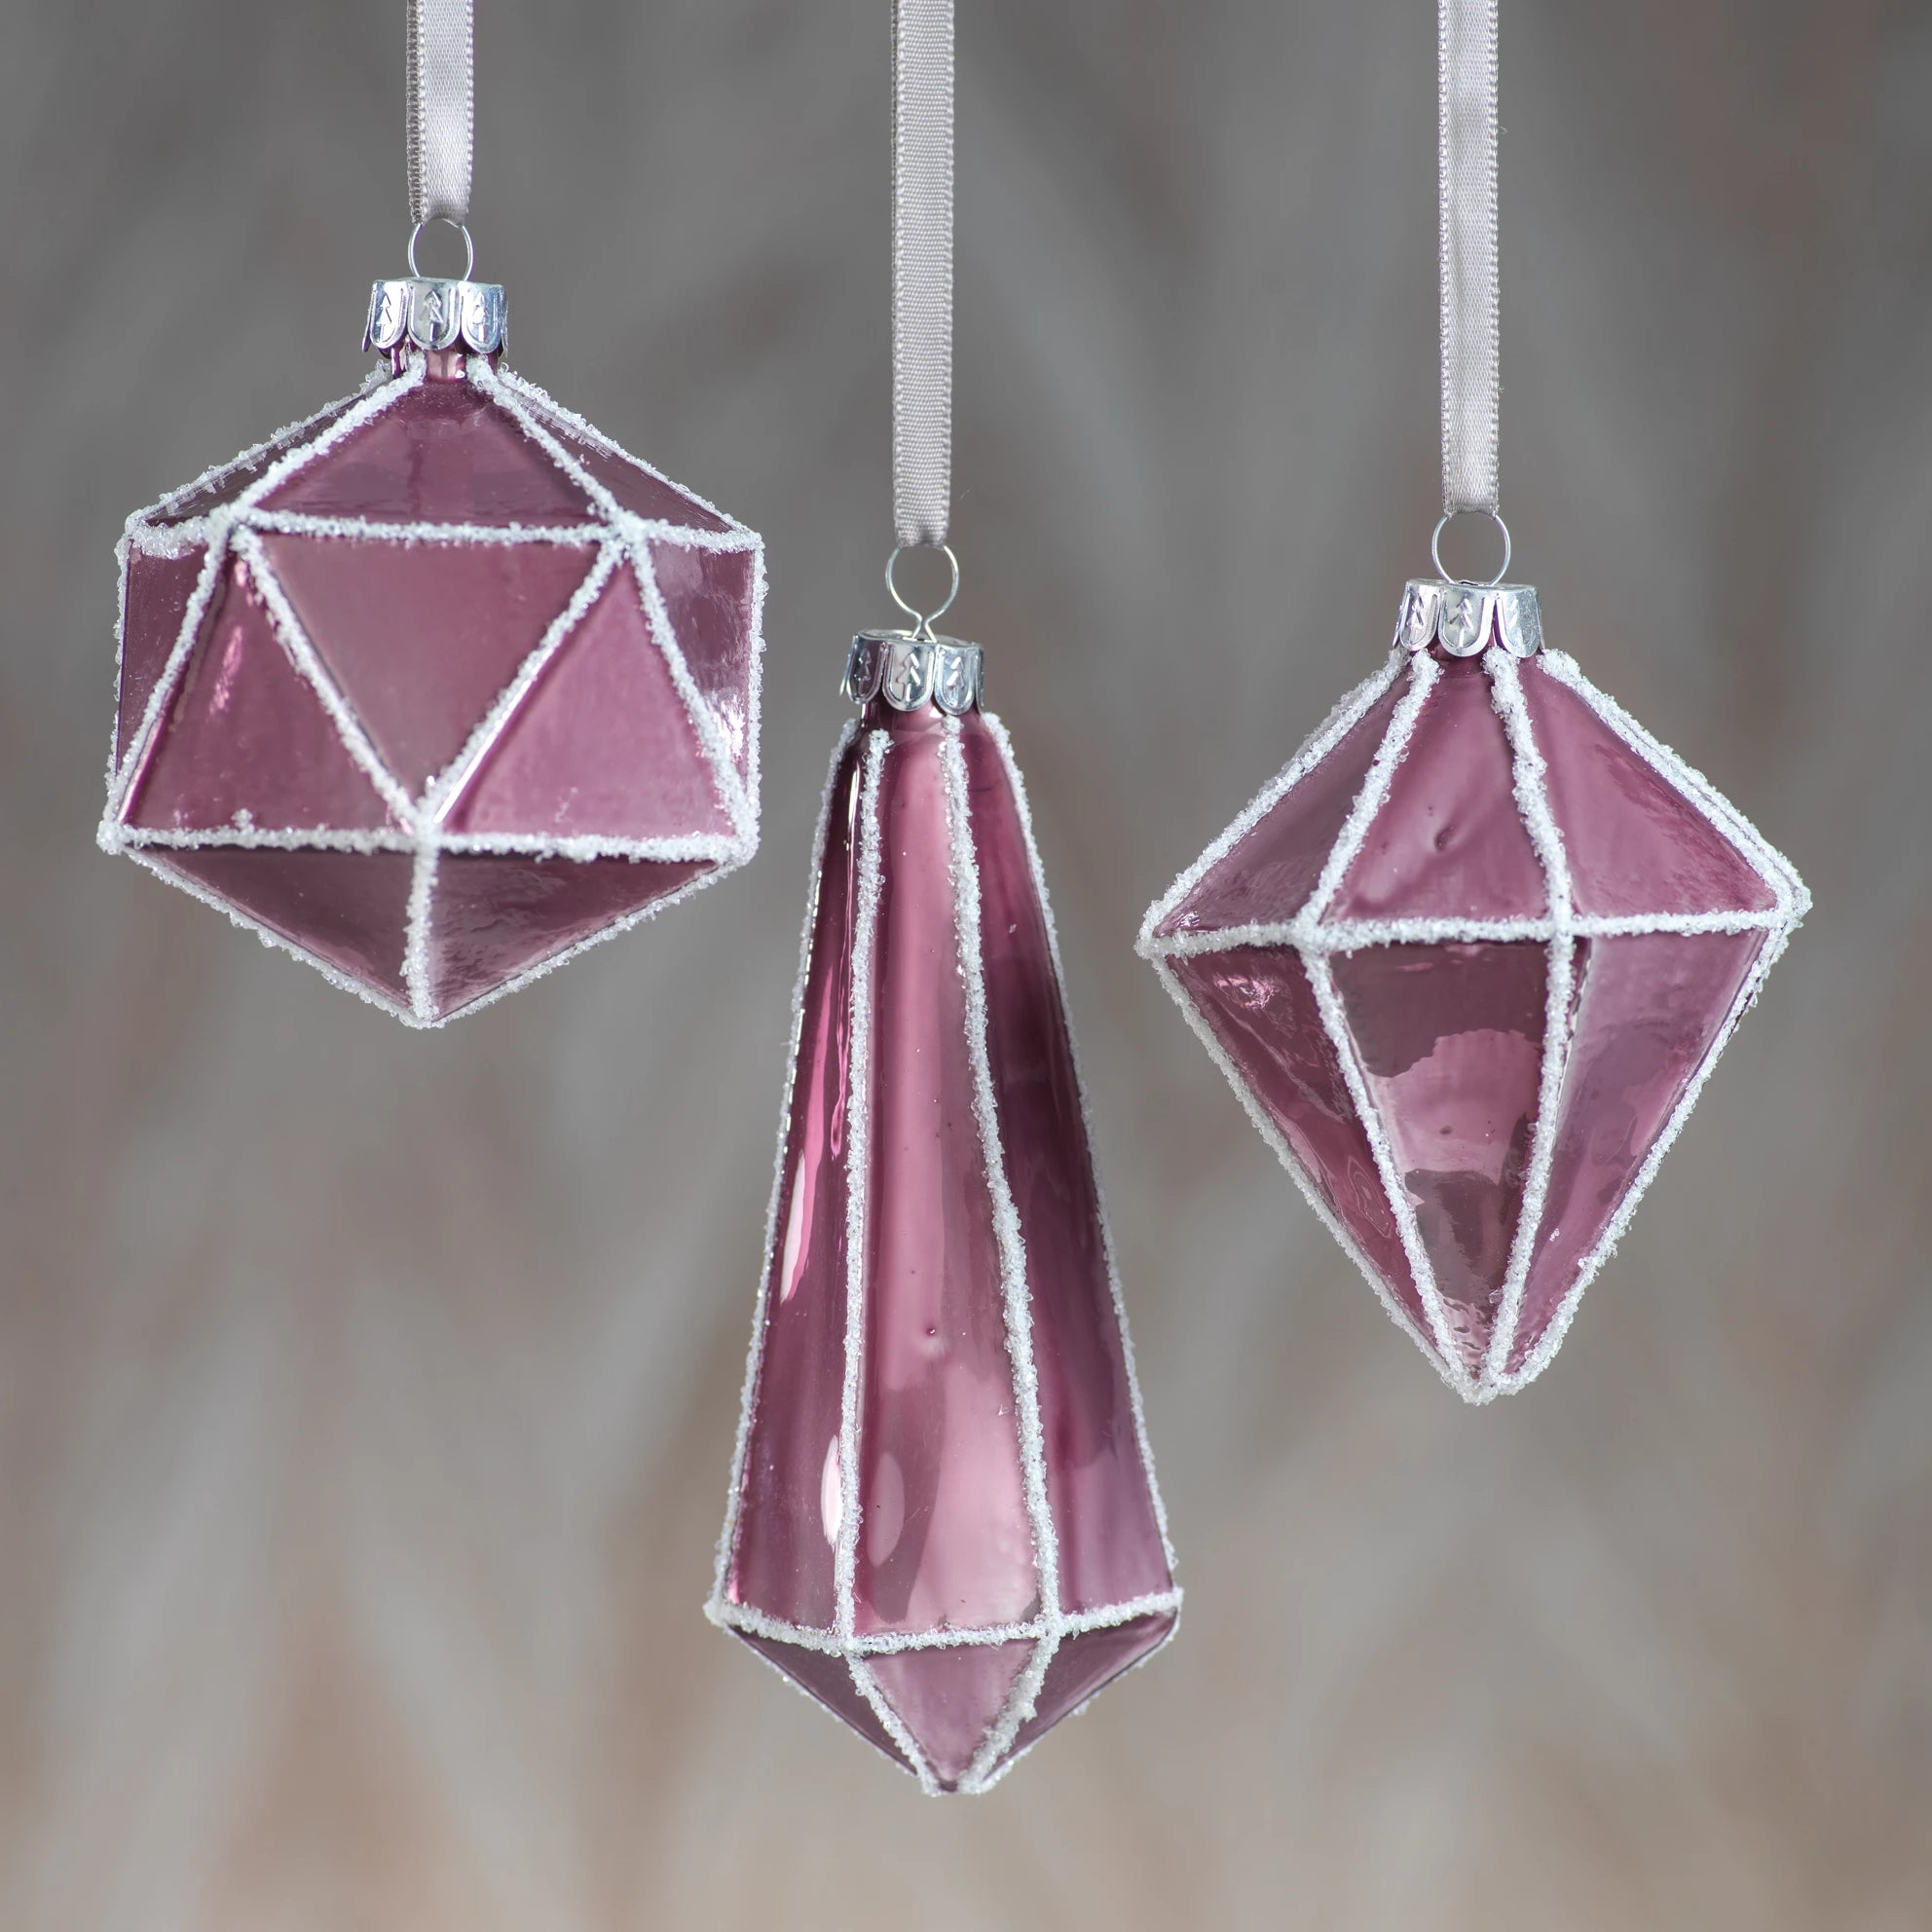 Metallic Pink Faceted Ornament - CARLYLE AVENUE